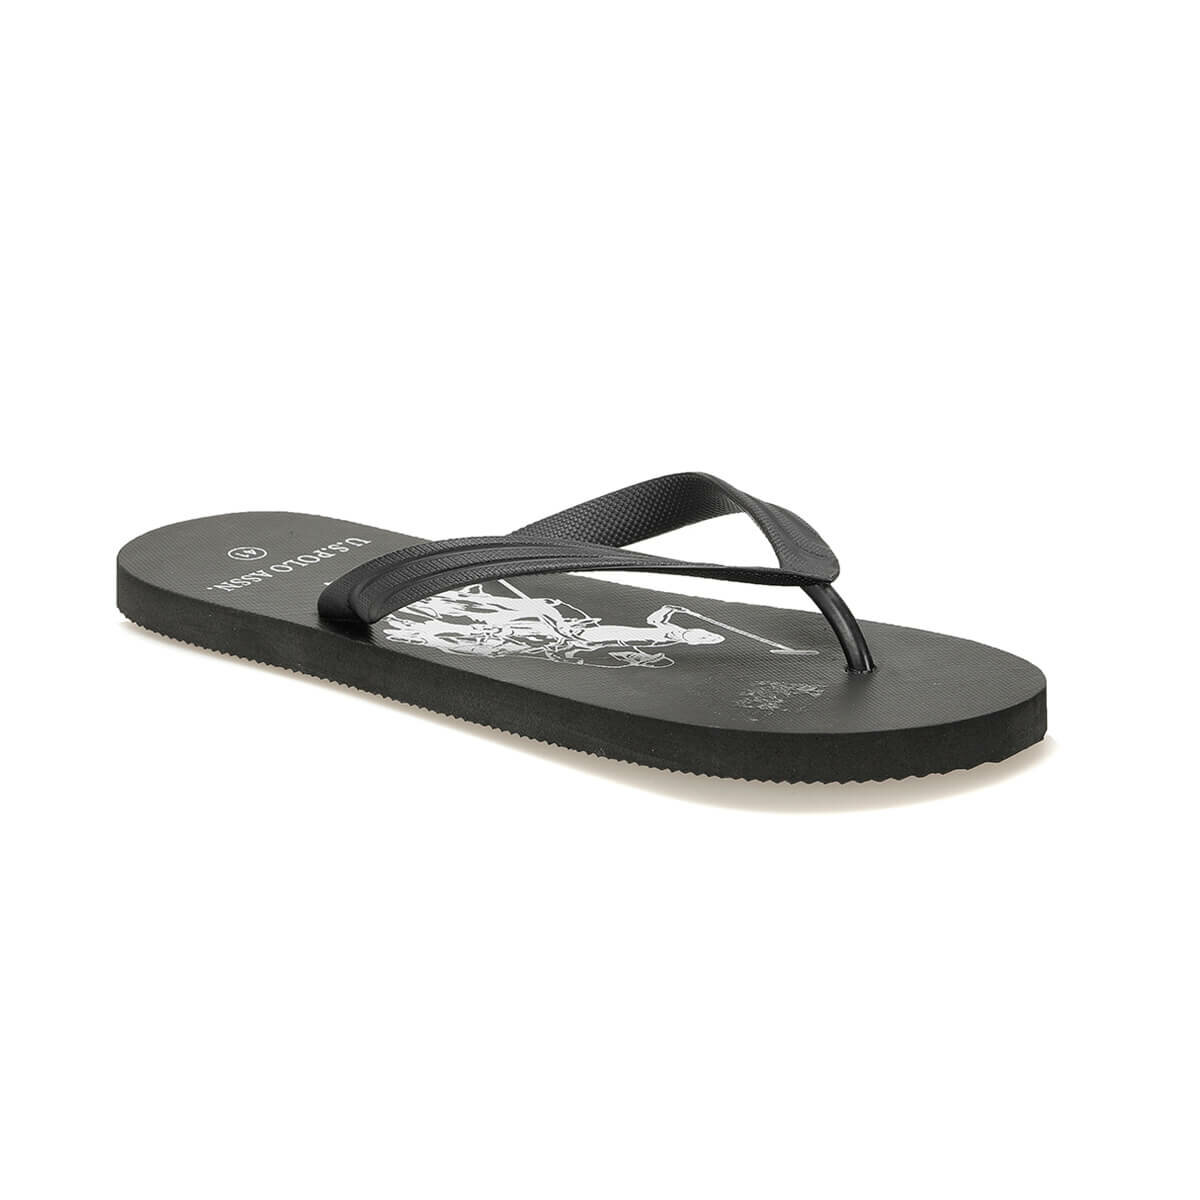 FLO ALLYSON Black Male Slippers U.S. POLO ASSN.